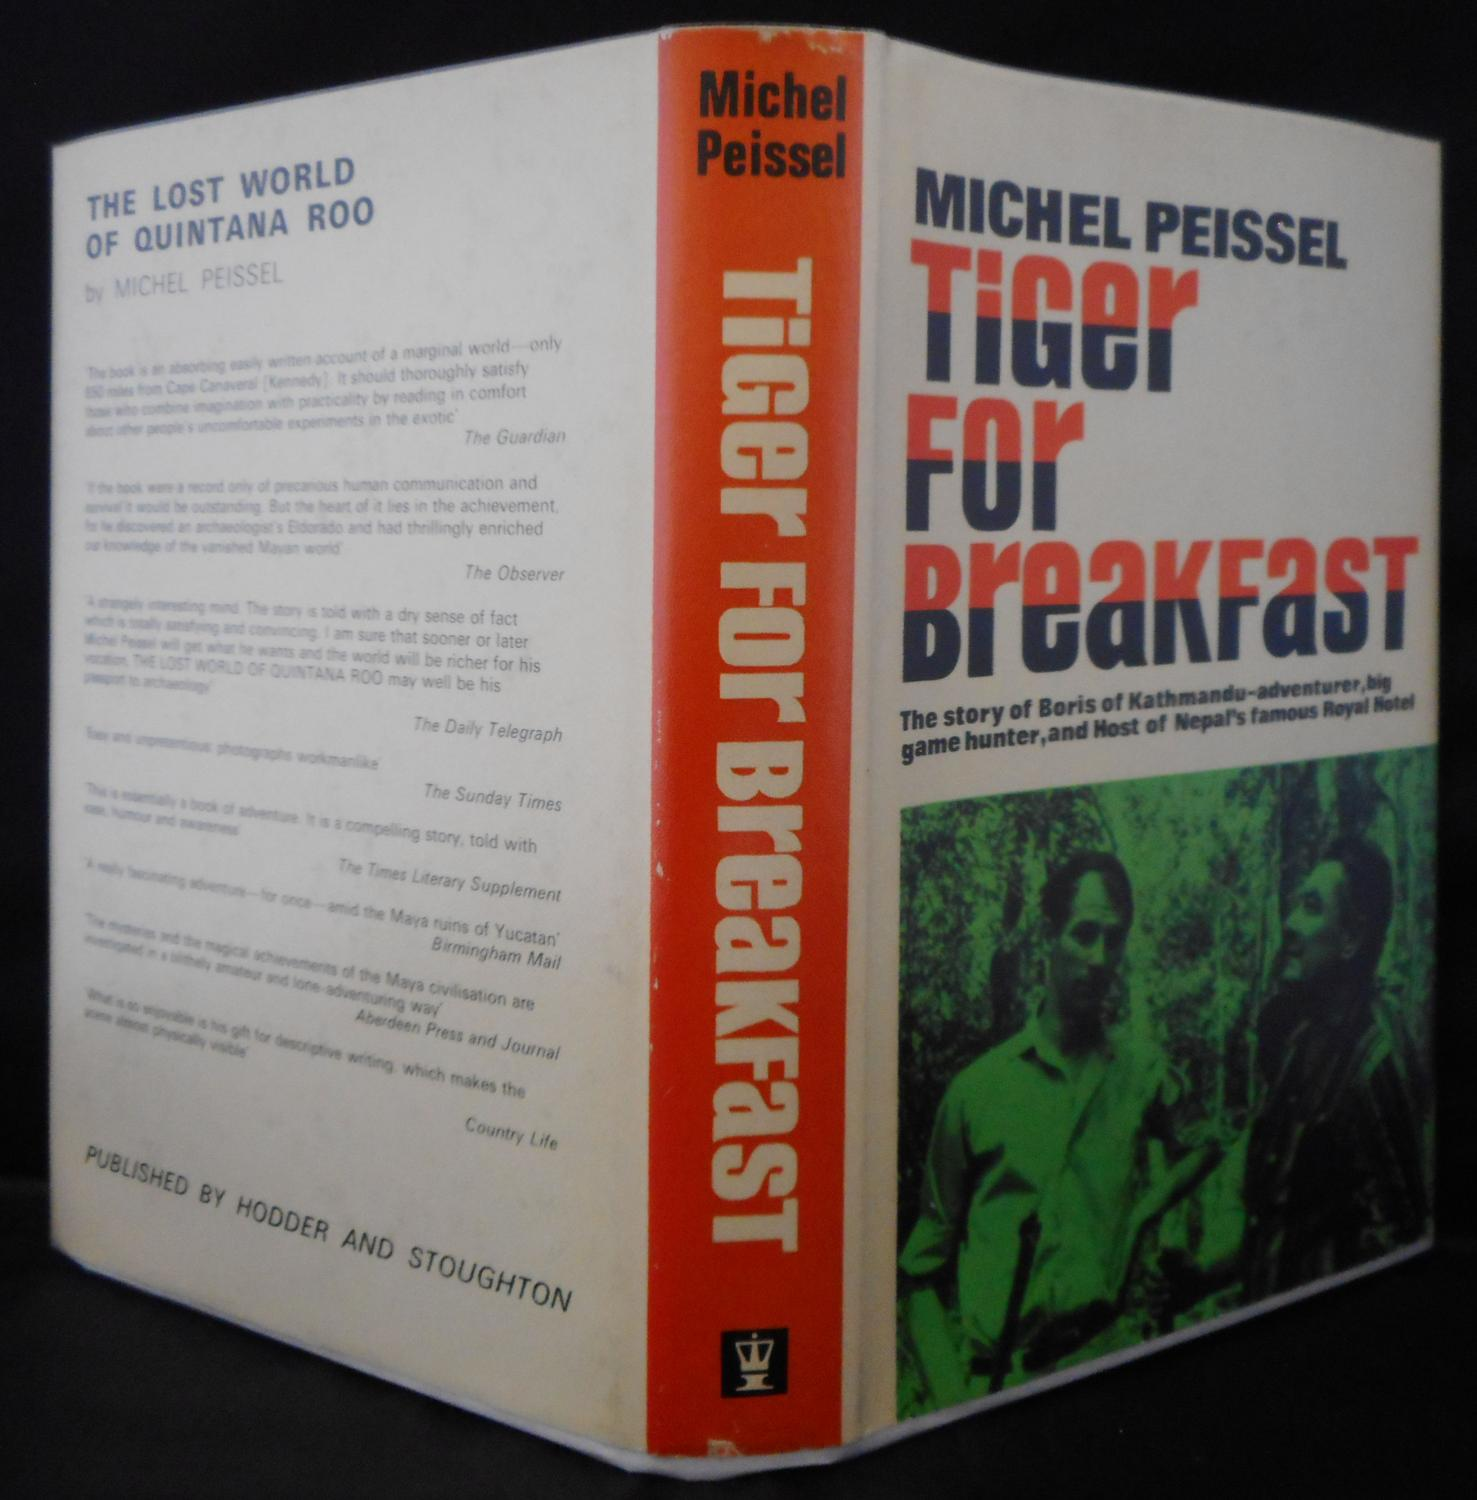 Tiger For Breakfast, The Story Of Boris Of Kathmandu - Adventurer, Big Game Hunter, And Host Of Nepals Famous Royal Hotel PEISSEL Michael